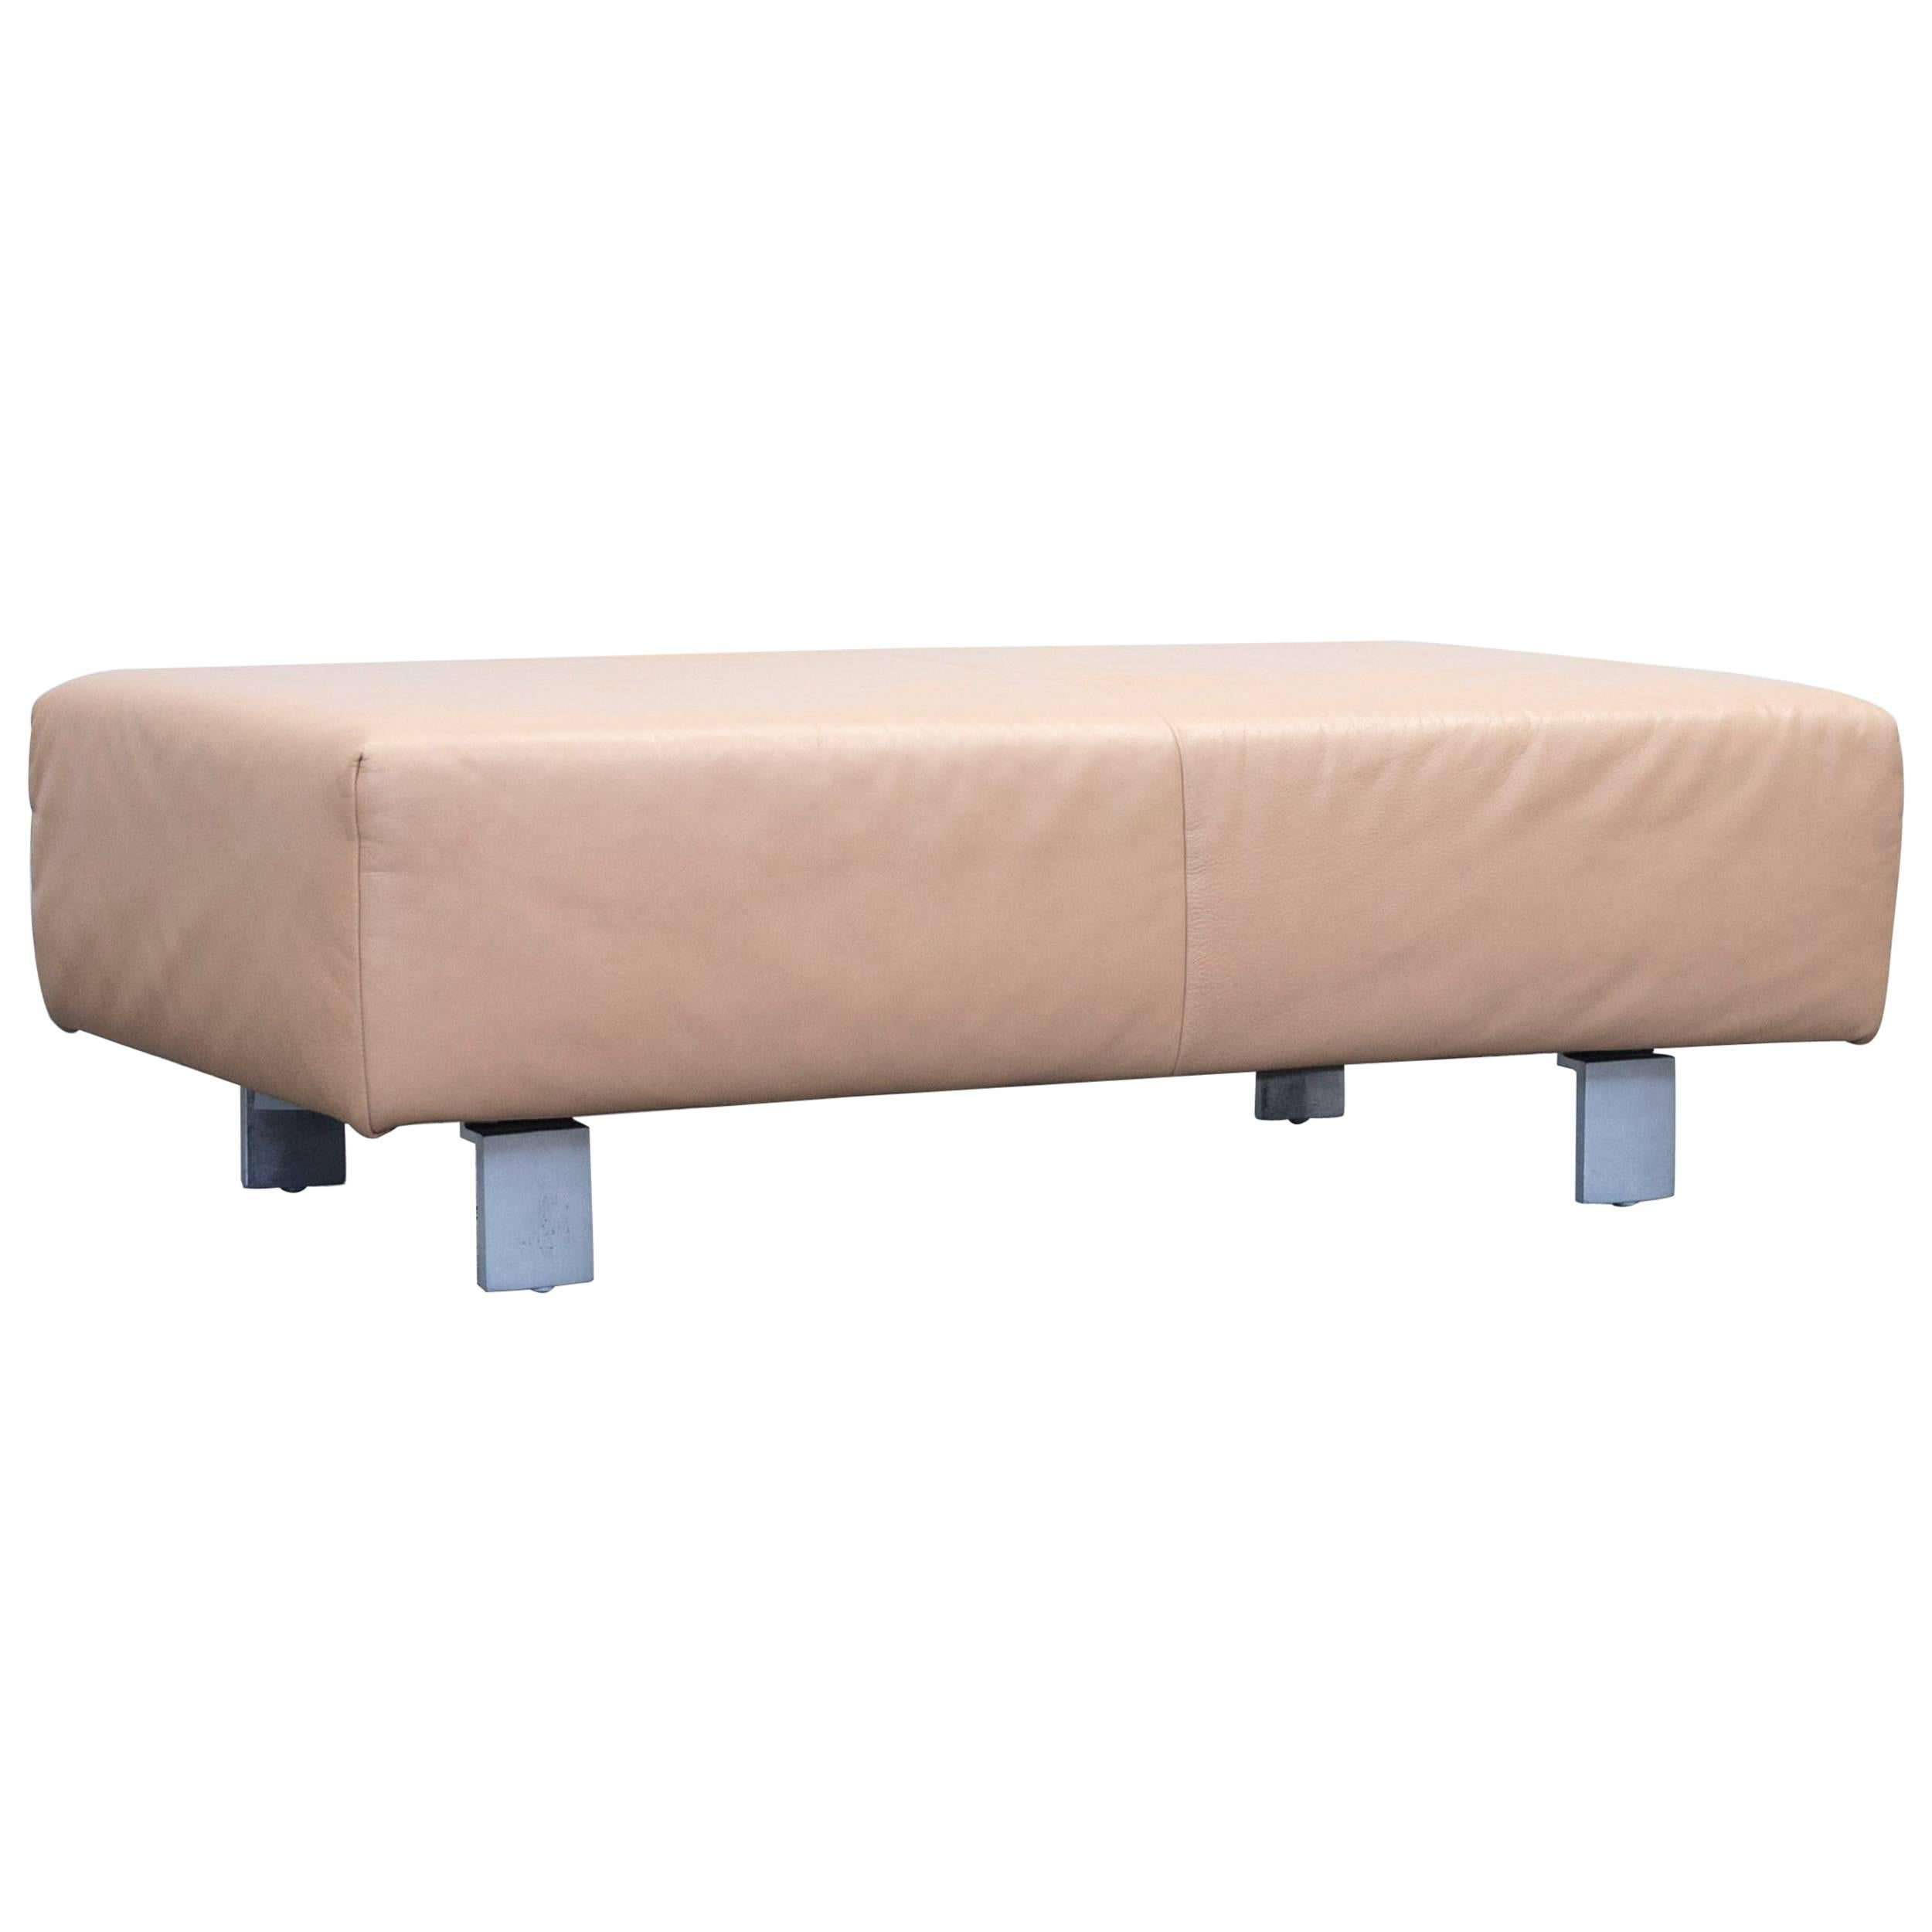 Koinor Designer Footstool Leather Beige One Seat Pouf